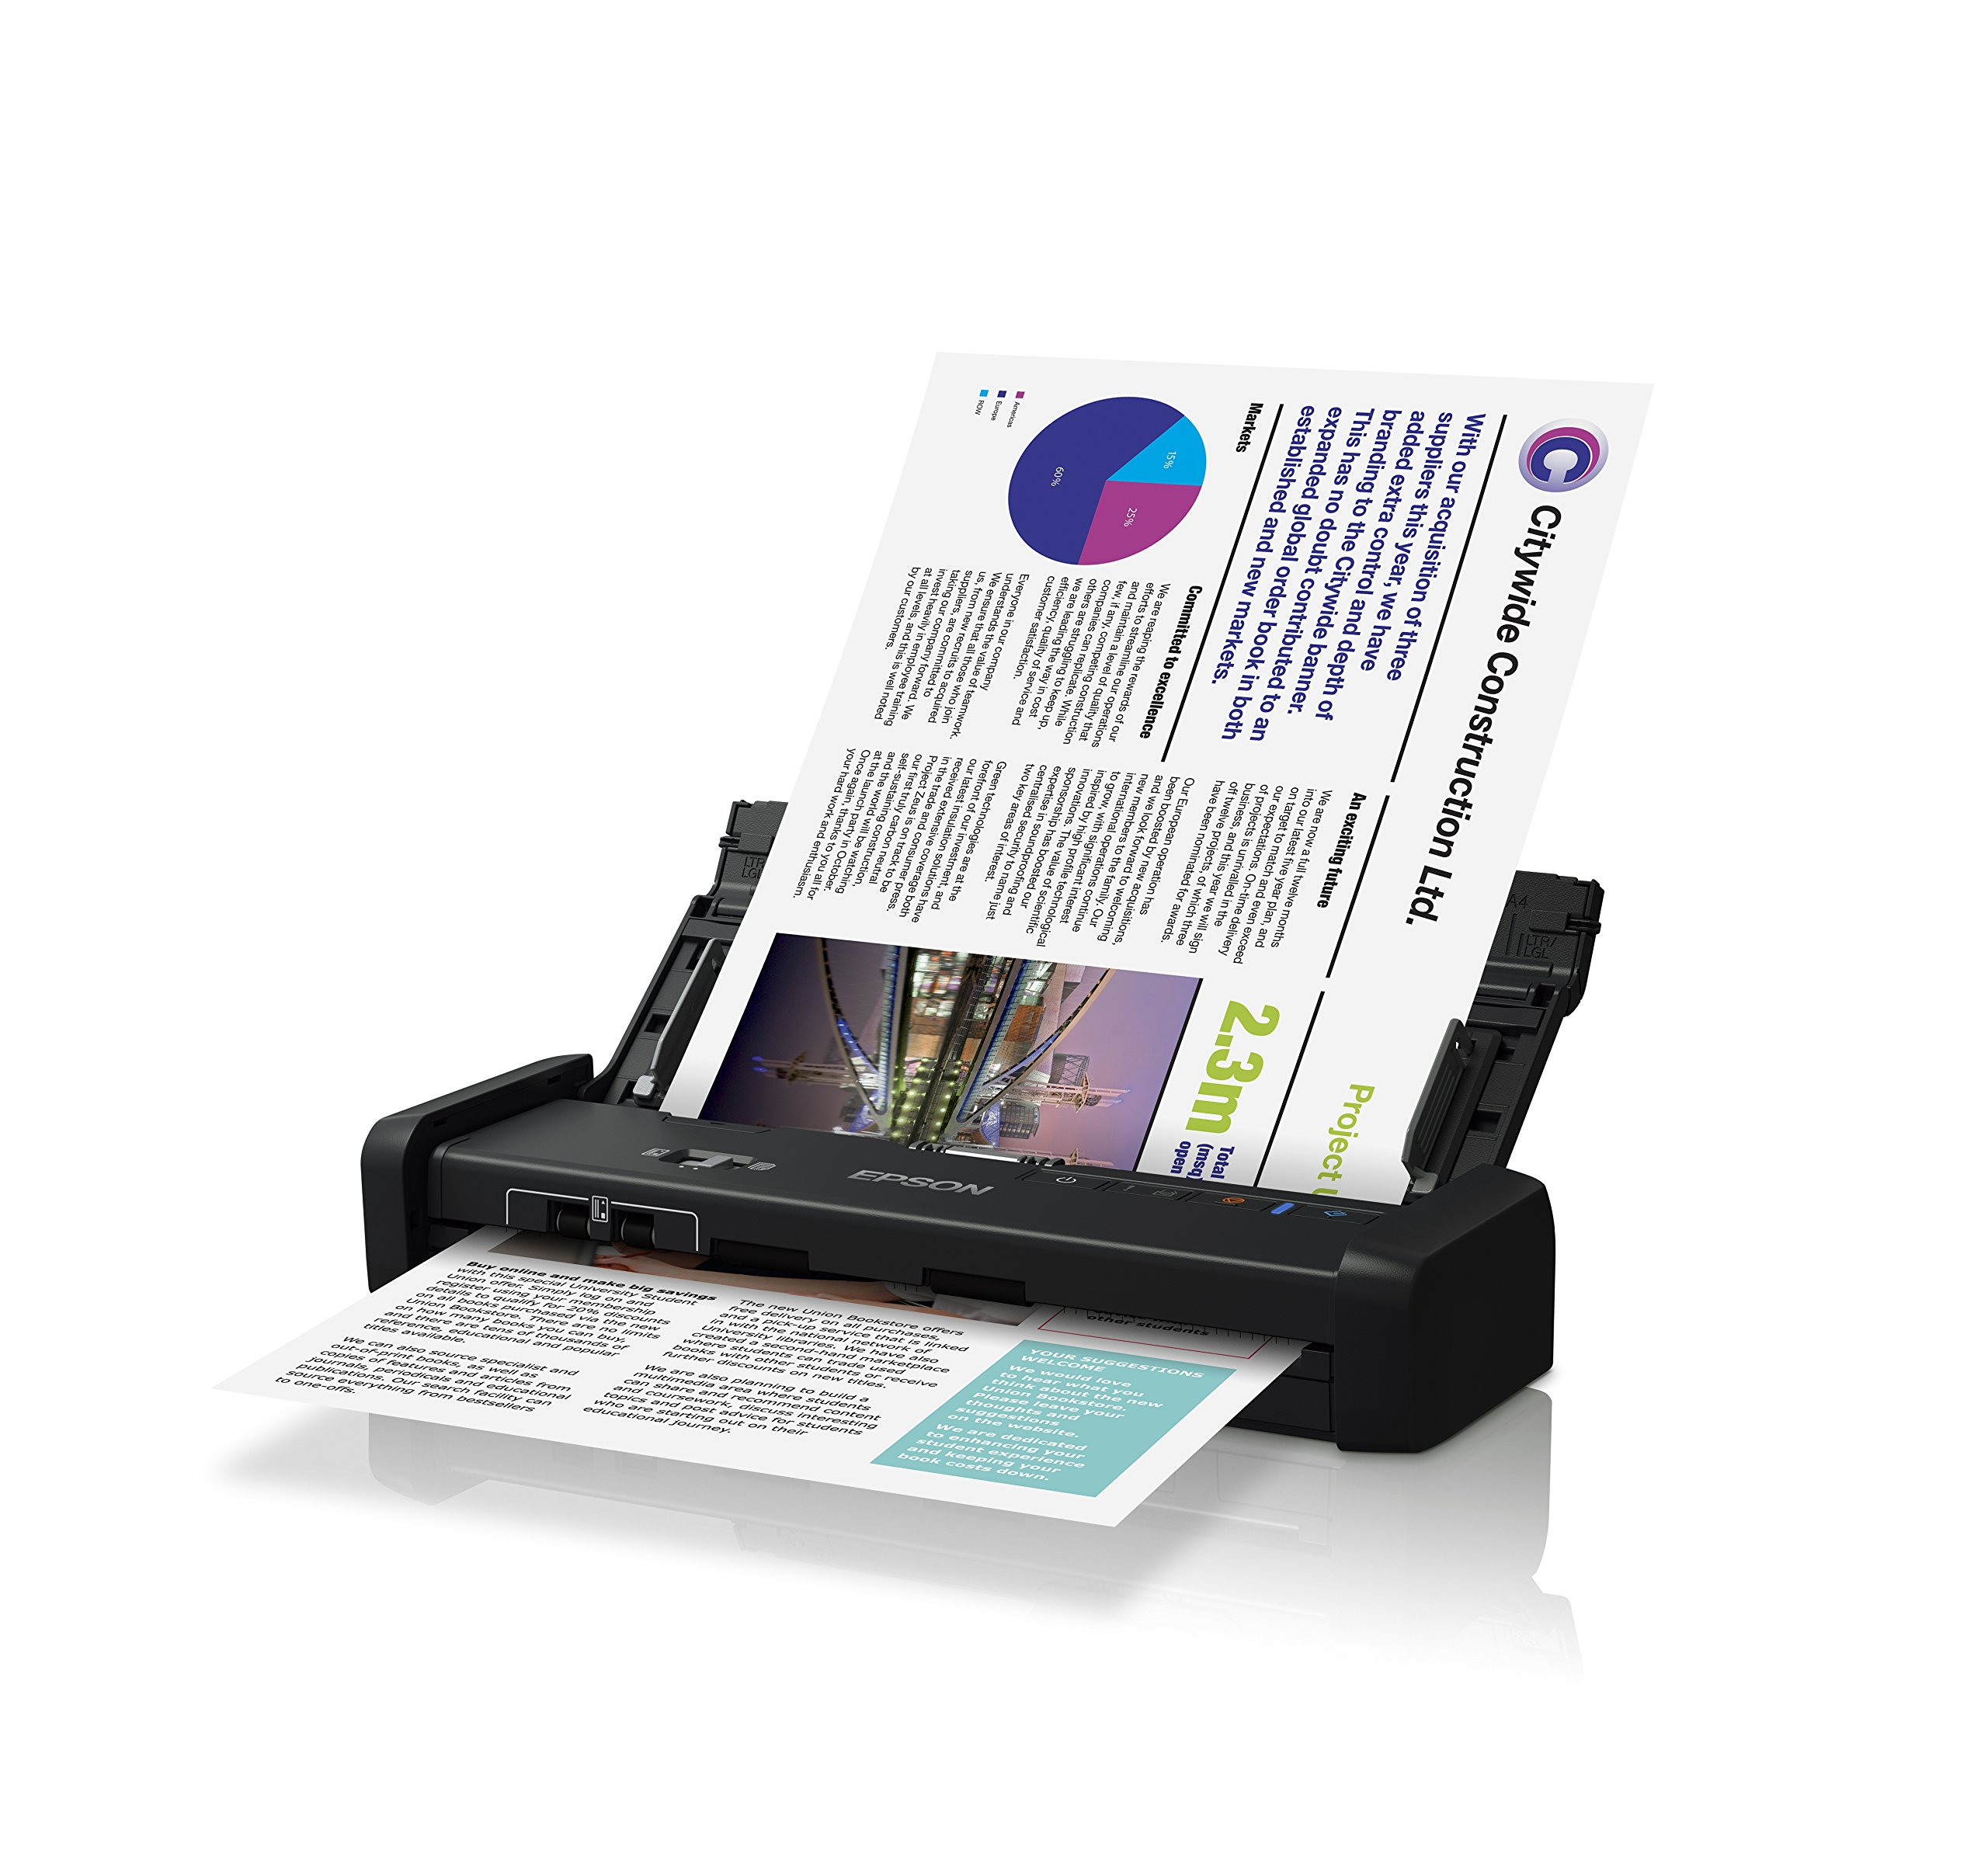 Epson DS-320 Mobile Scanner with ADF:  25ppm, TWAIN & ISIS Drivers, 3-Year Warranty